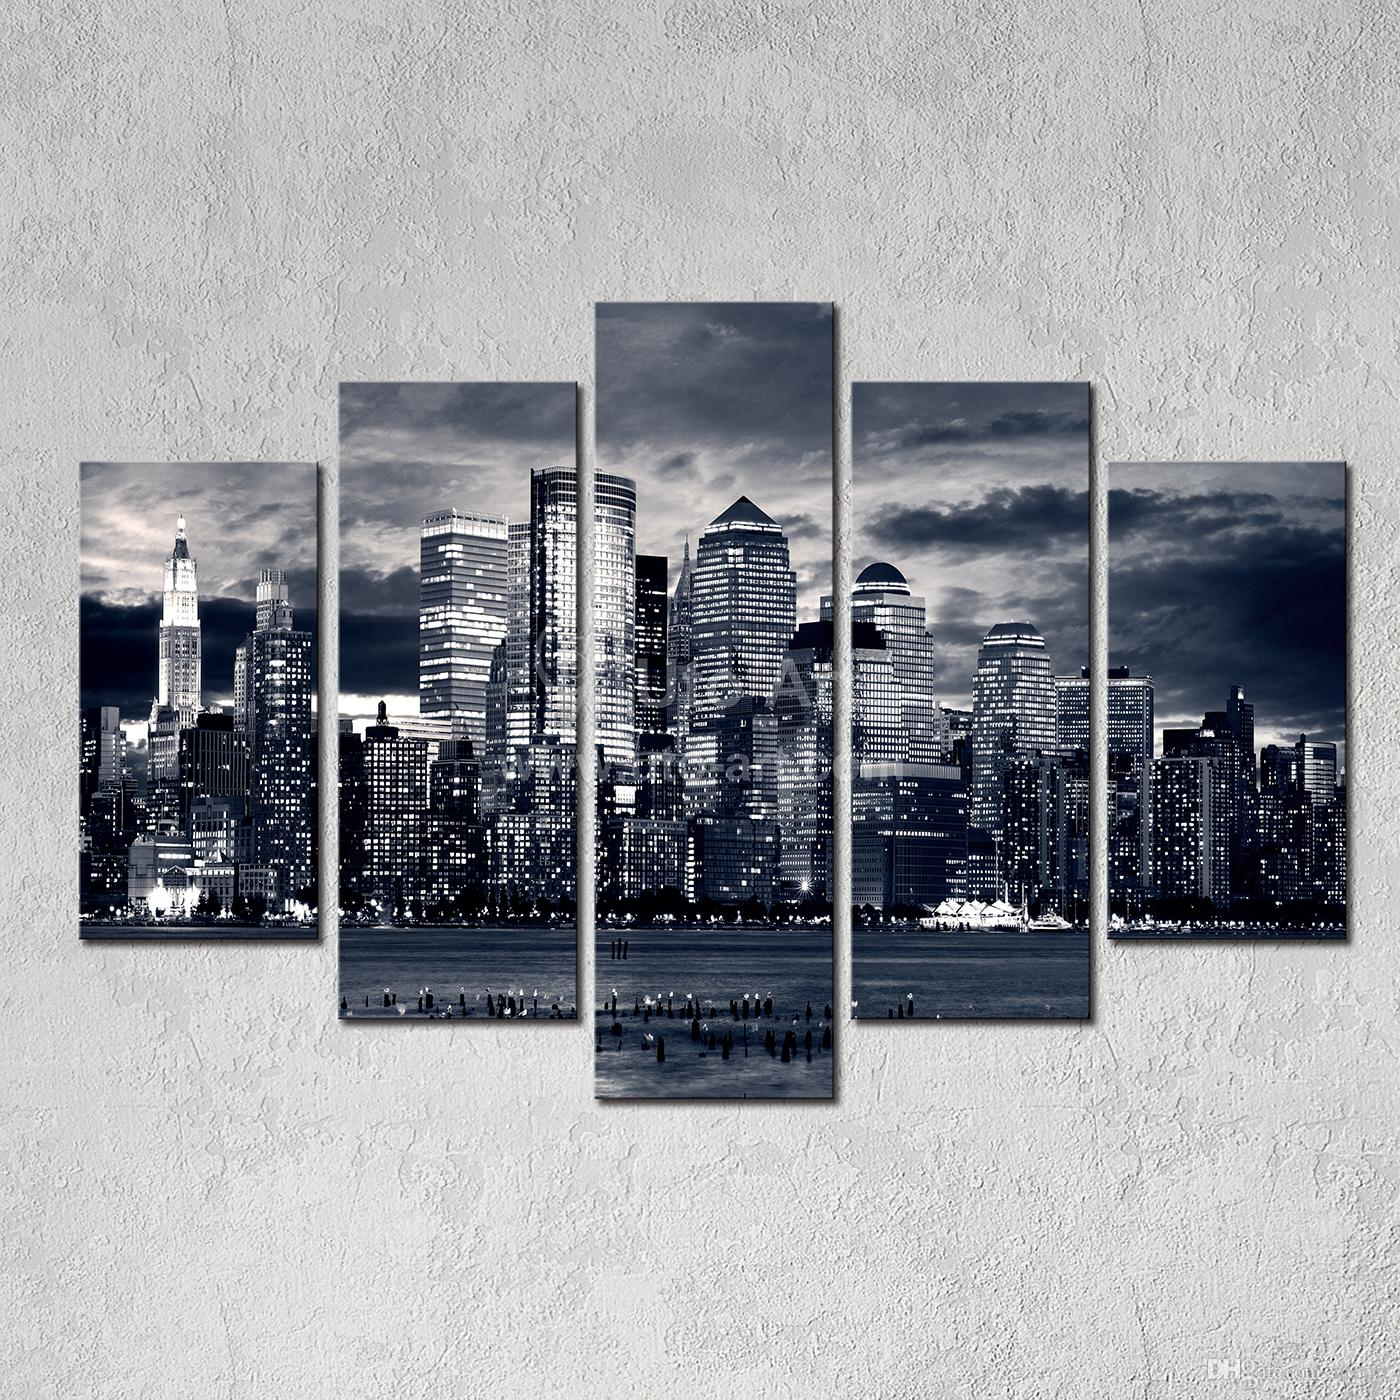 2017 Modern Home Decor New York City Painting Black White Digital Picture Print On Canvas Art